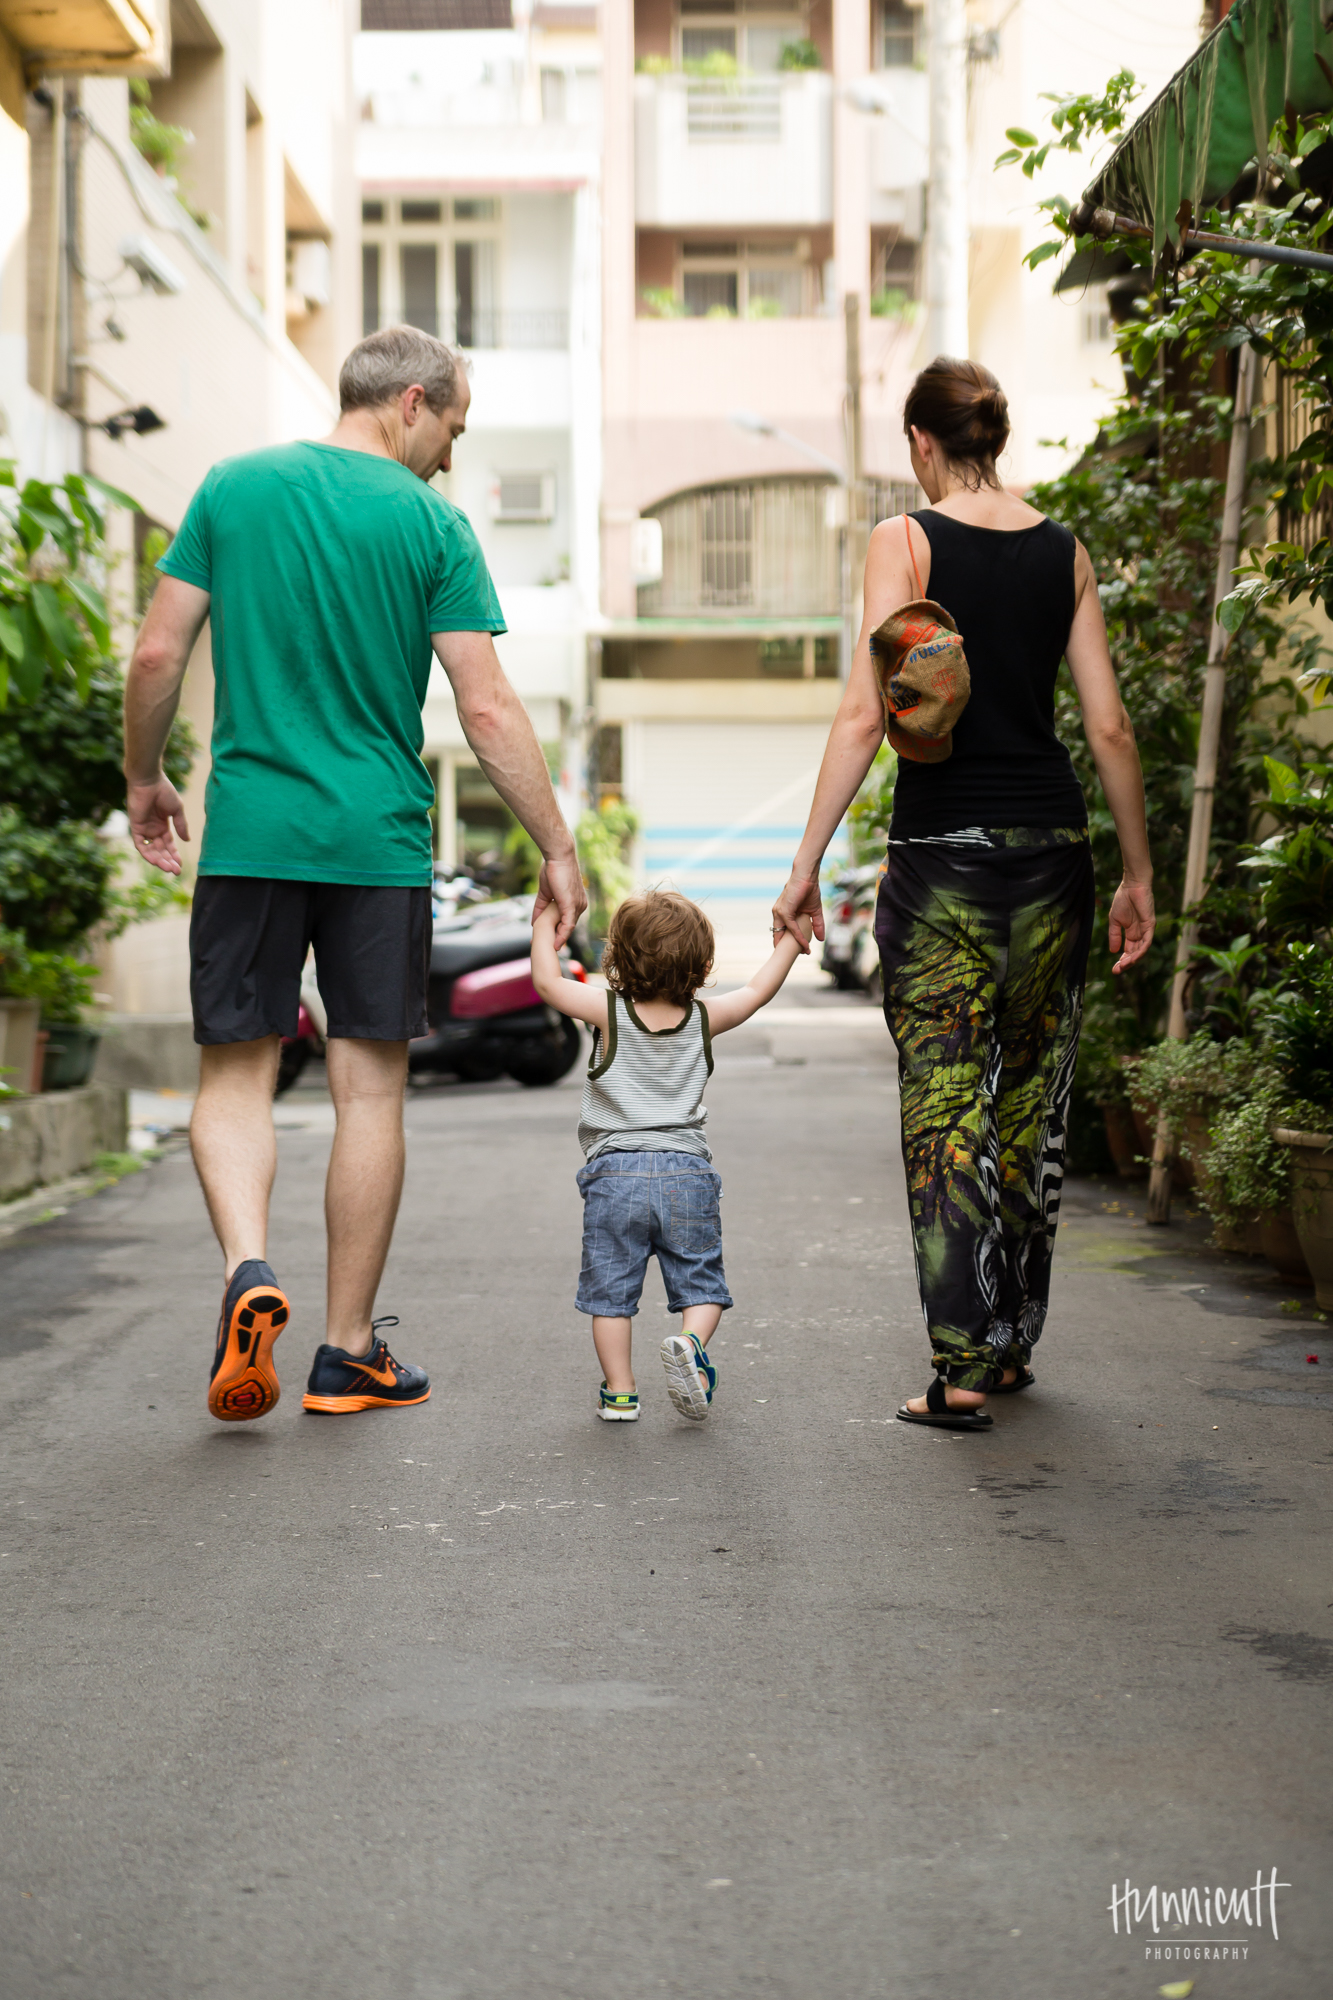 Hunnicutt_Photography_Taichung_Urban_Lifestyle_Family_Photography-8